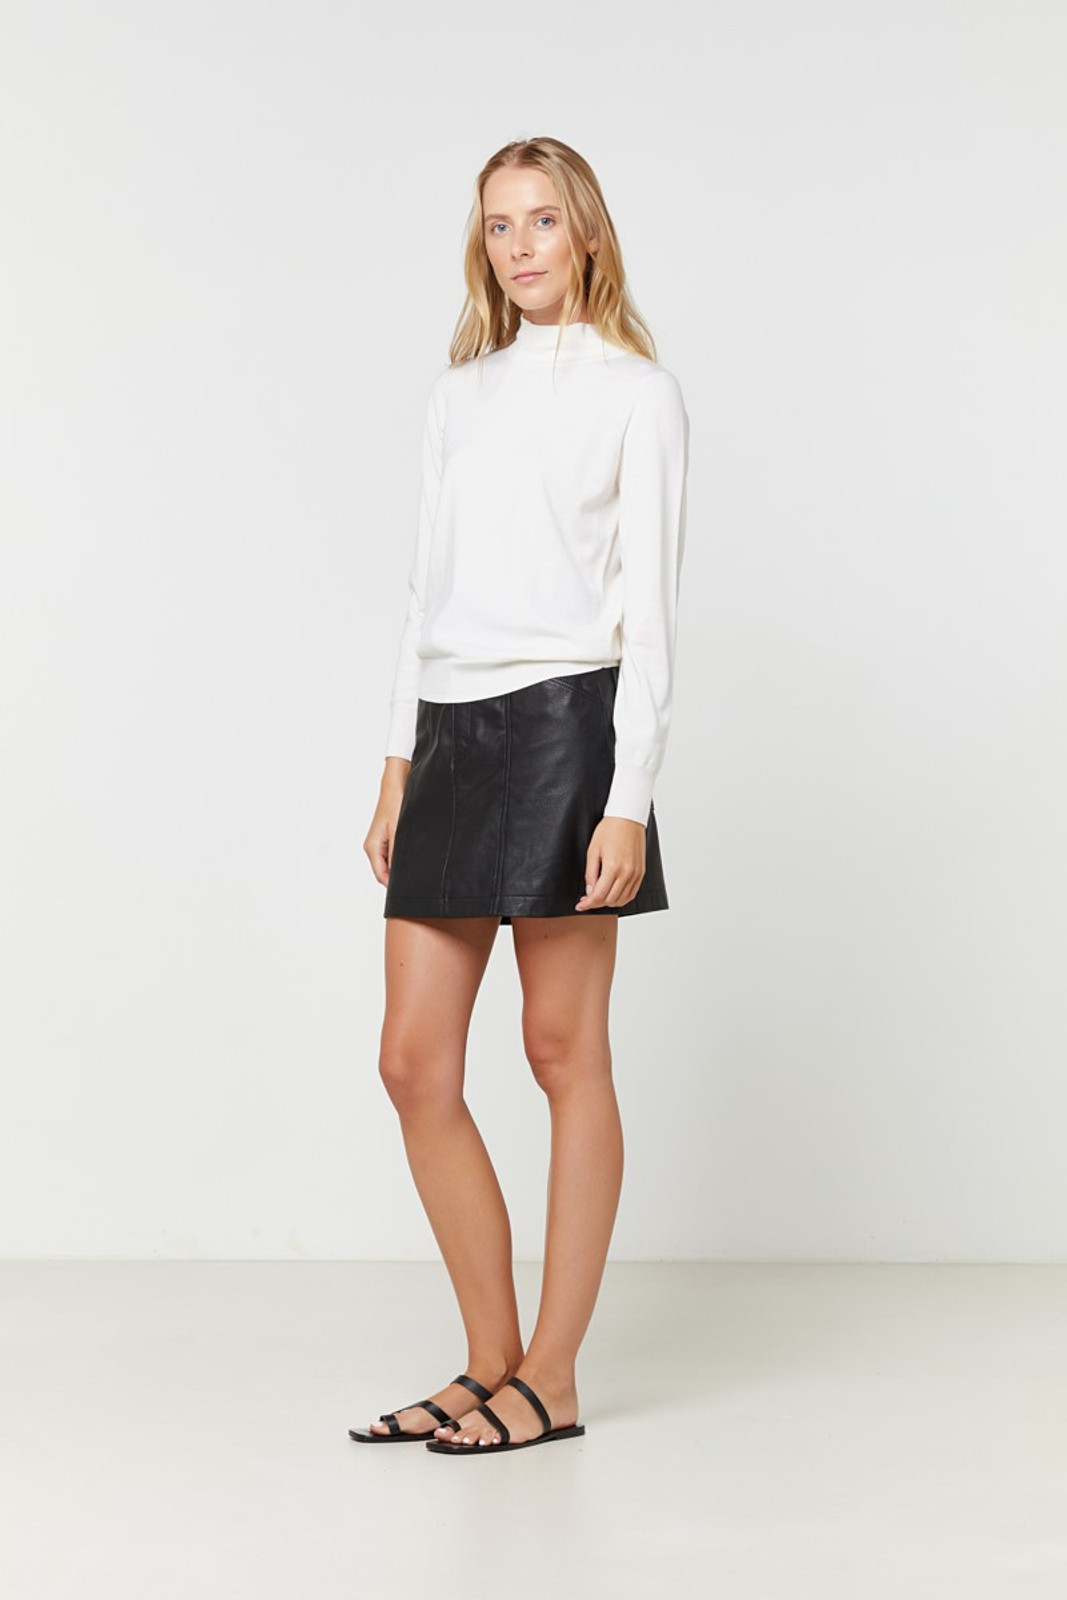 Elka Collective Rory Knit Neutrals  0